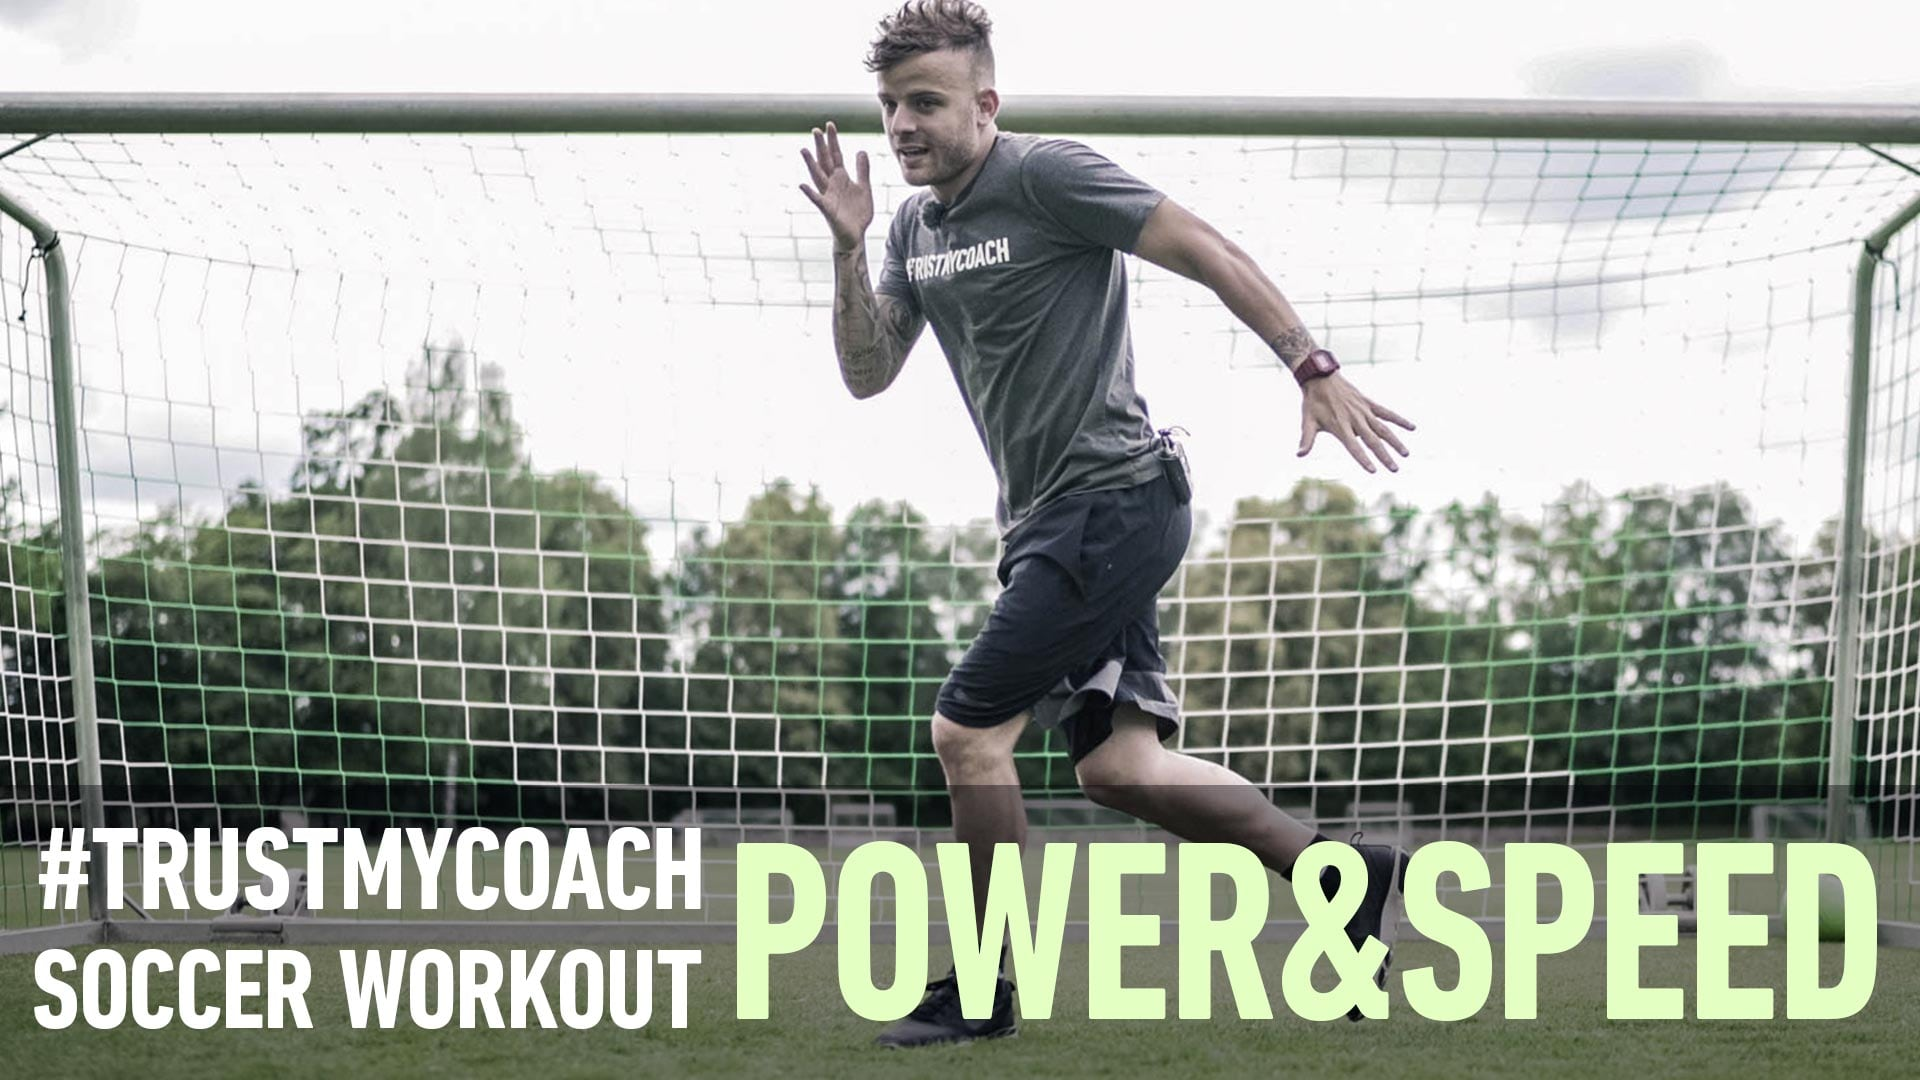 Functional Training for Soccer Players 🏆Exercises to Develop Your Game!